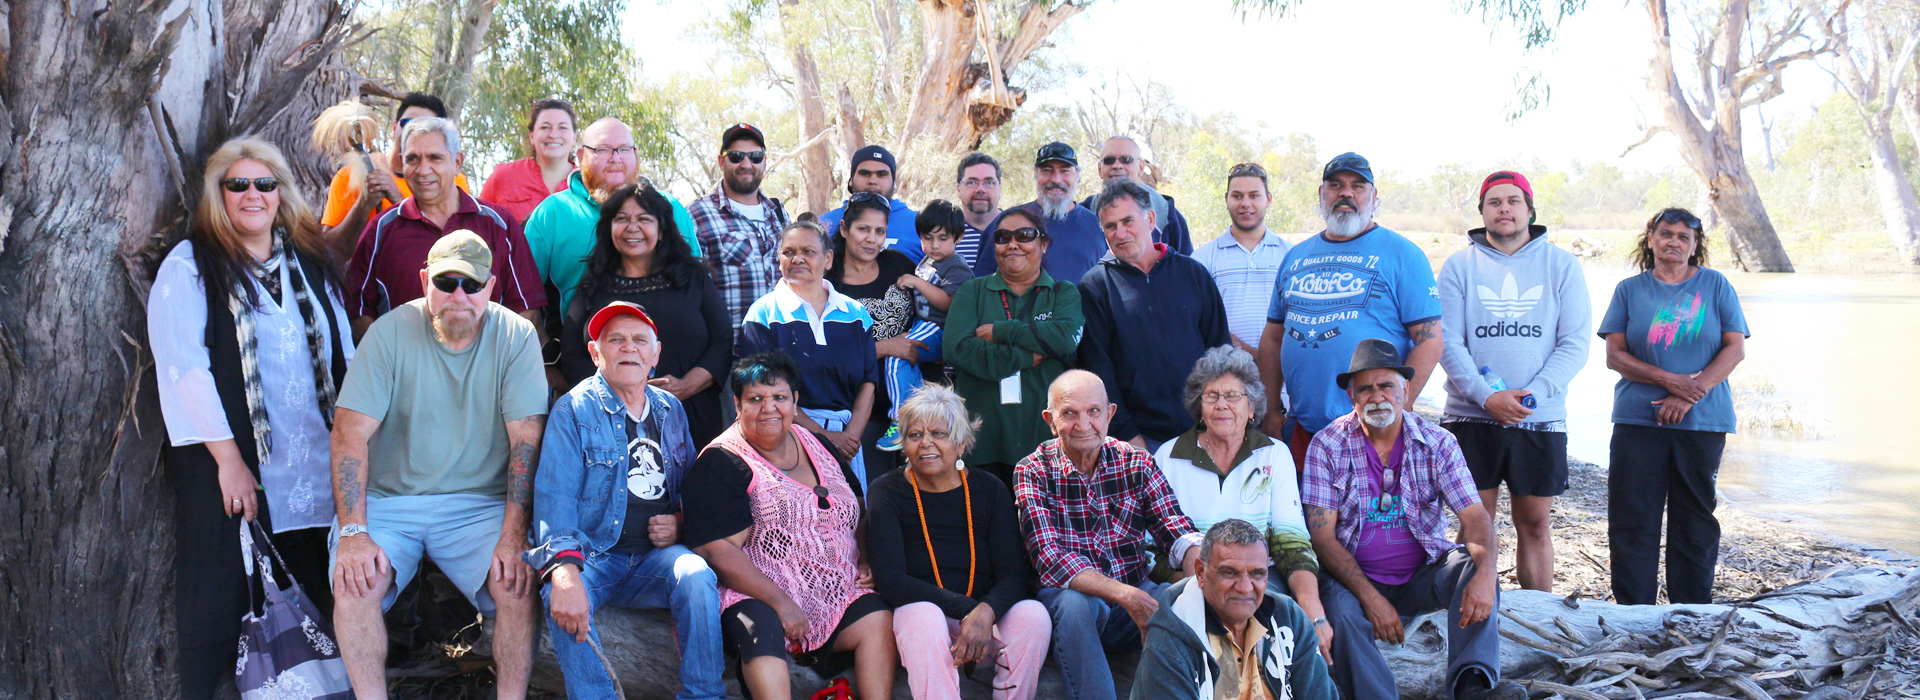 MLDRIN is involved in Capacity Building for Australian Indigenous Nations